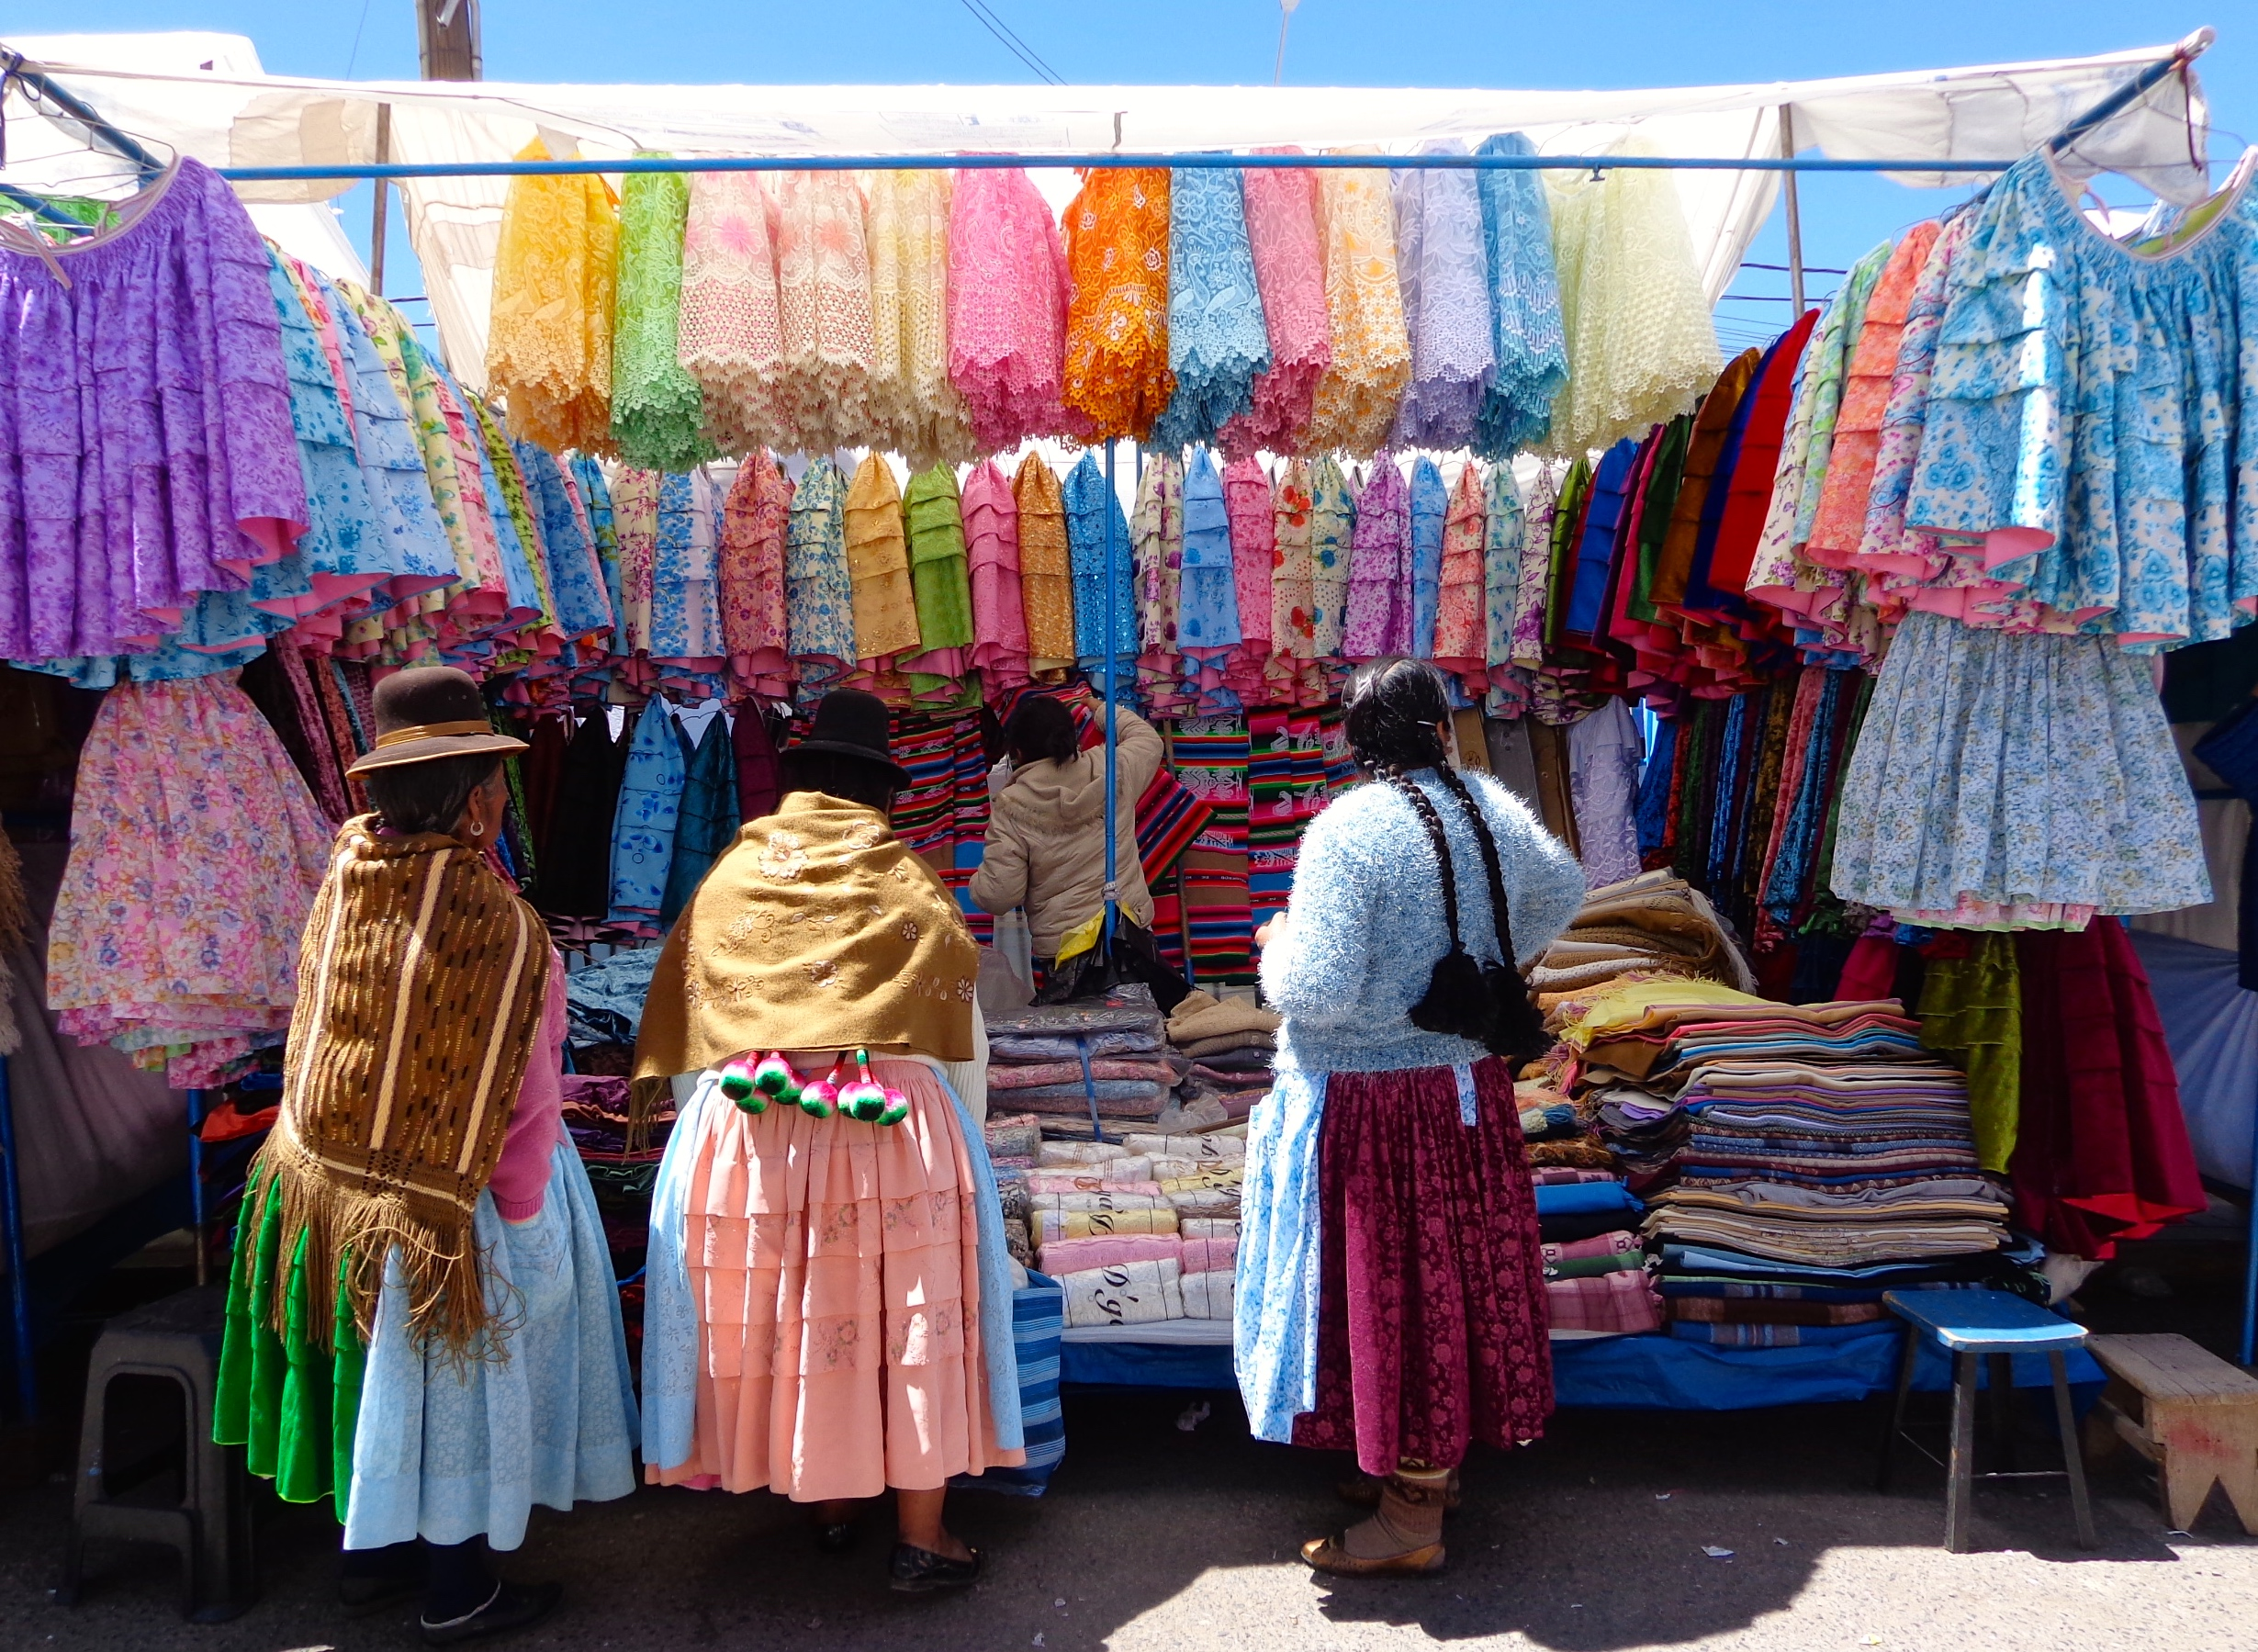 Feria Saturday market in Puno, Peru